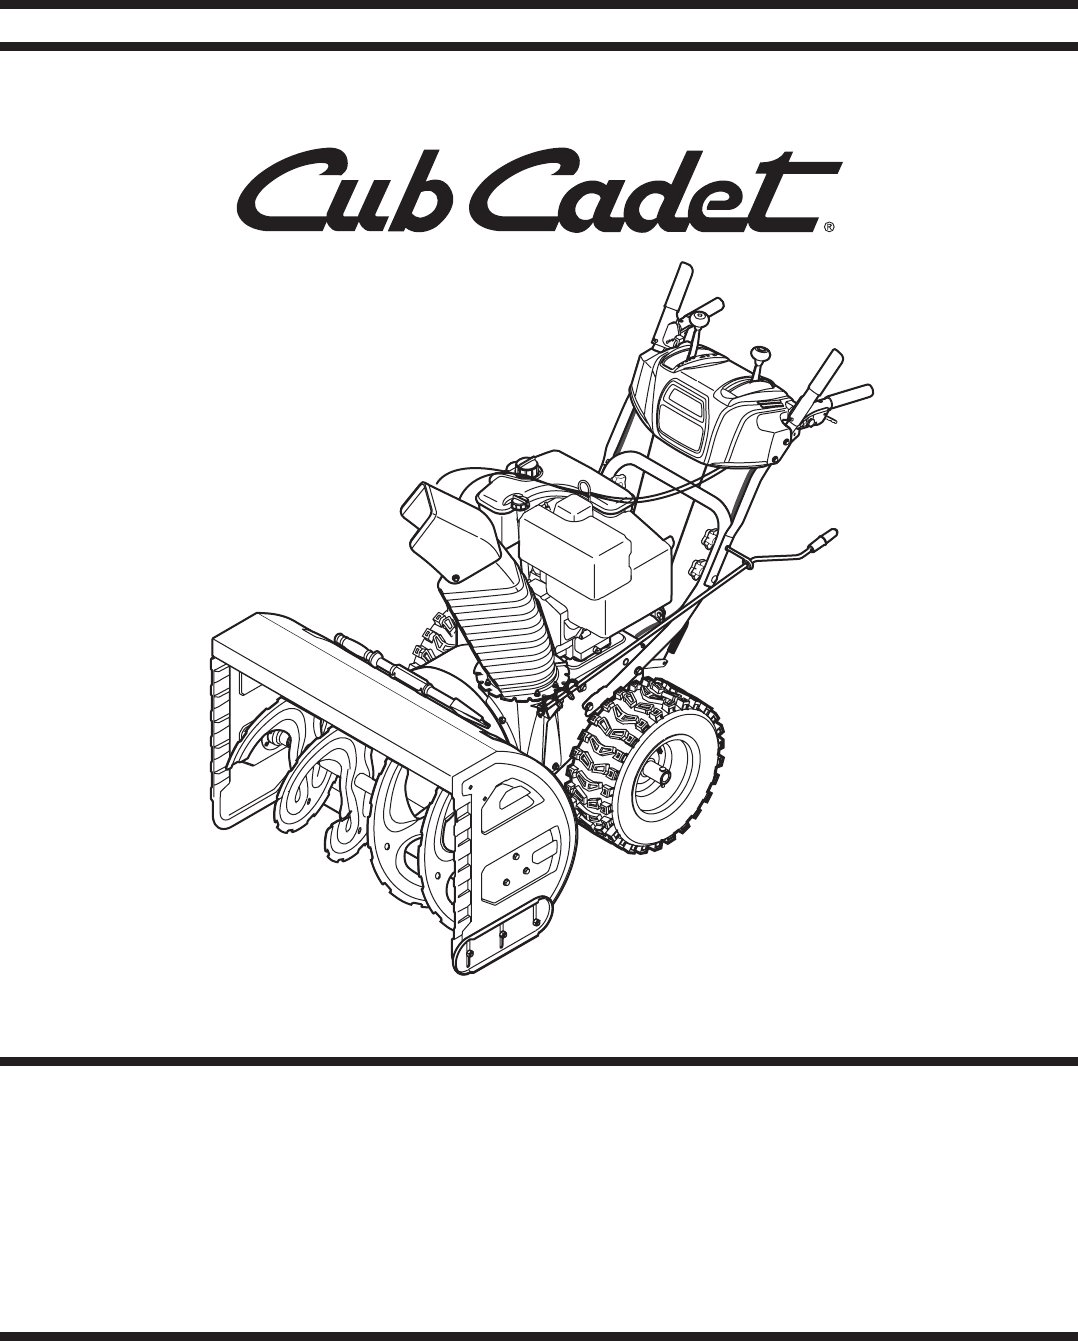 [NRIO_4796]   Cub Cadet Snow Blower 930 SWE User Guide | ManualsOnline.com | Cub Cadet Snow Blower Schematic |  | Lawn and Garden Manuals - ManualsOnline.com